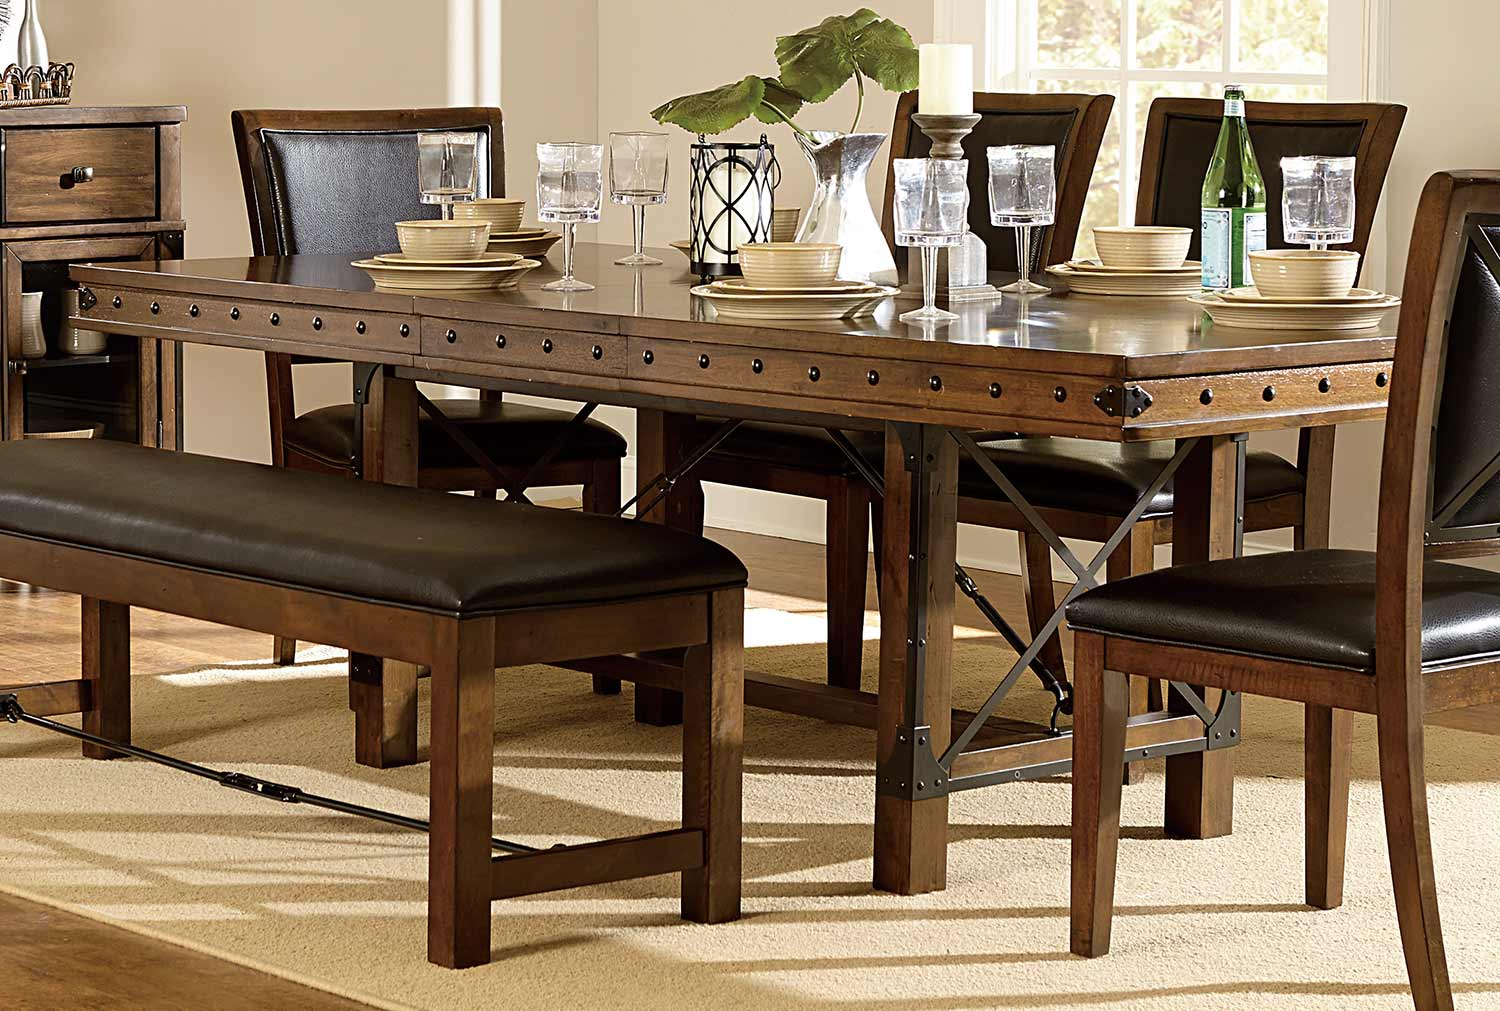 Homelegance Urbana Trestle Dining Table - Burnished Brown